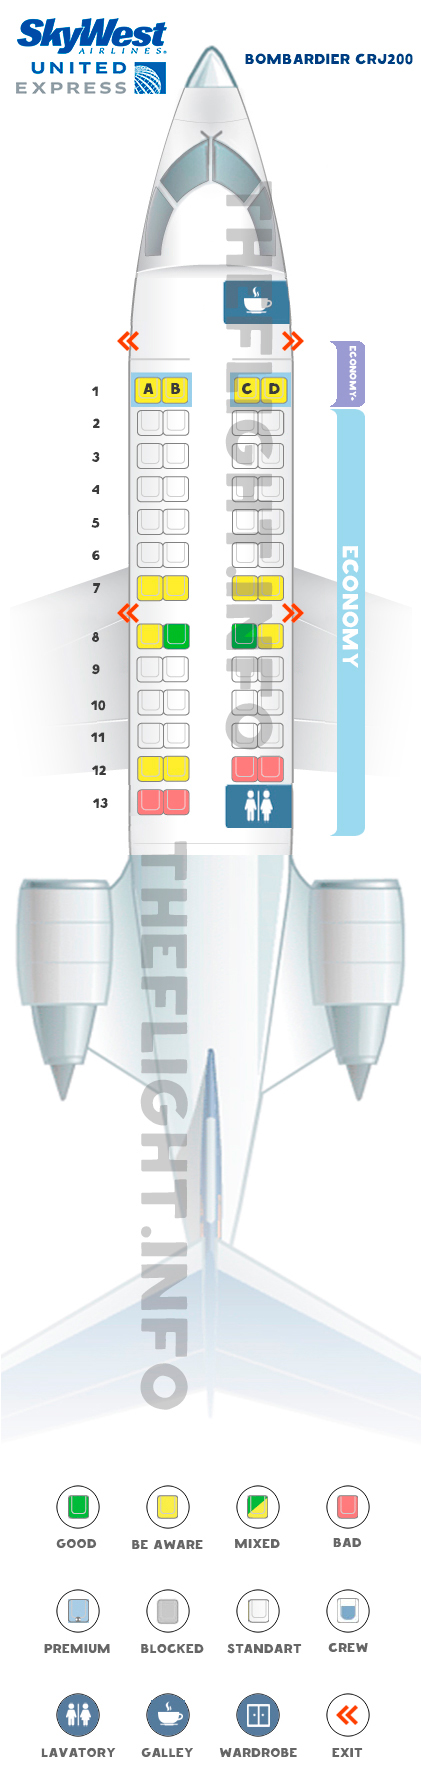 Seat map Bombardier CRJ200 United Express